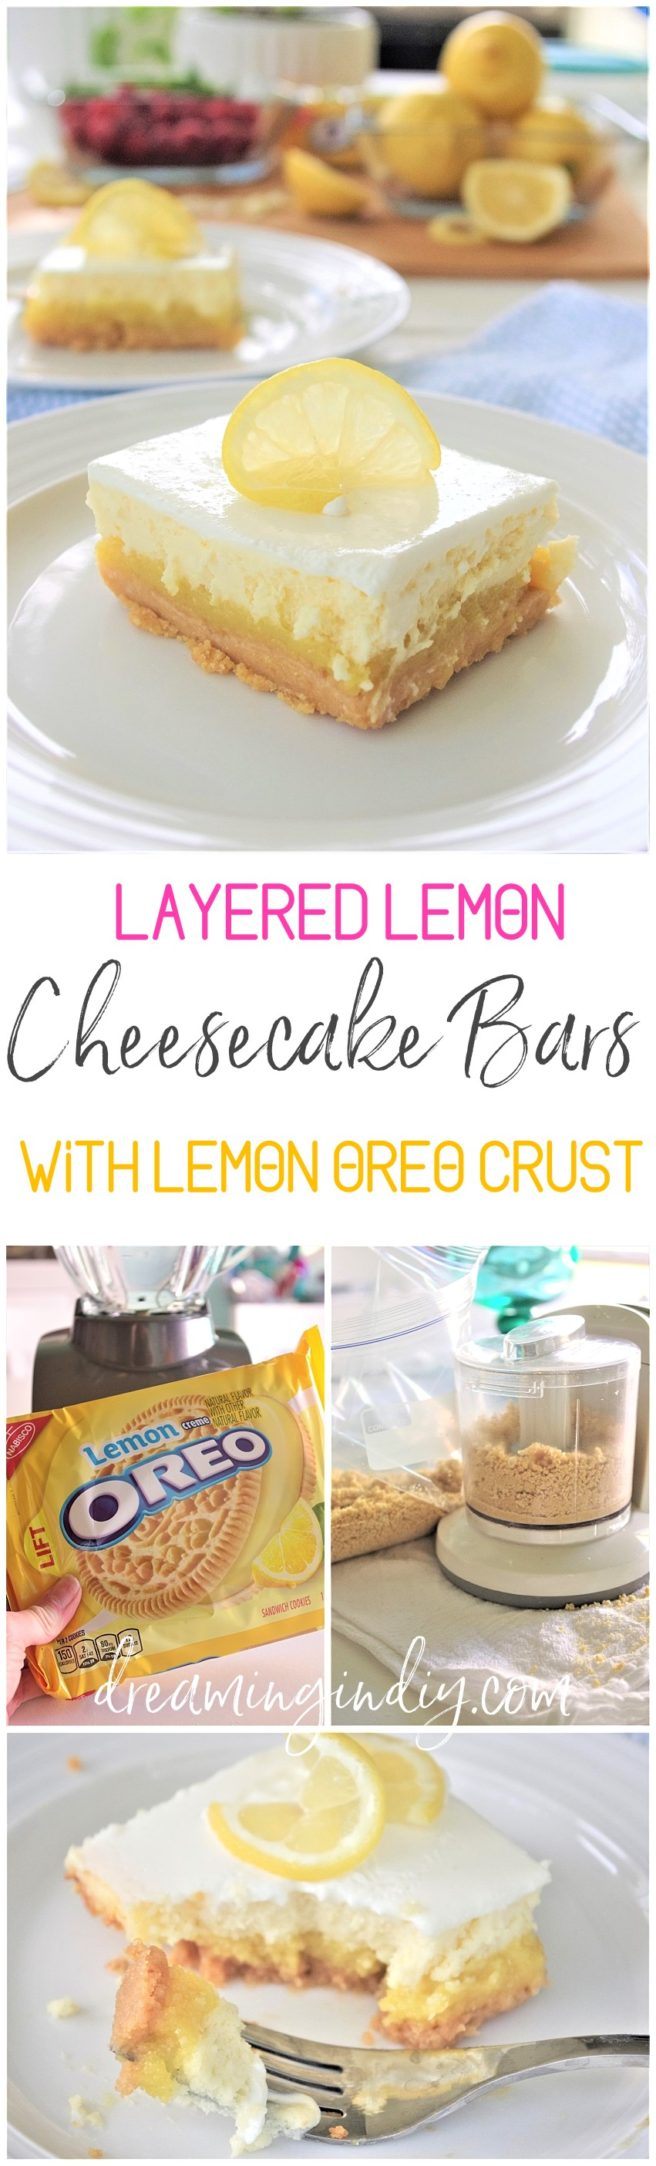 Yummy Lemon Sour Cream Cheesecake Dessert Bars with Lemon Oreo Crust - Easy Layered Treats Recipe by Dreaming in DIY #lemondesserts #lemonbars #easylemonbars #lemoncheesecakebars #cheesecakebars #easydesserts #simpledesserts #simplerecipes #simpledessertrecipes